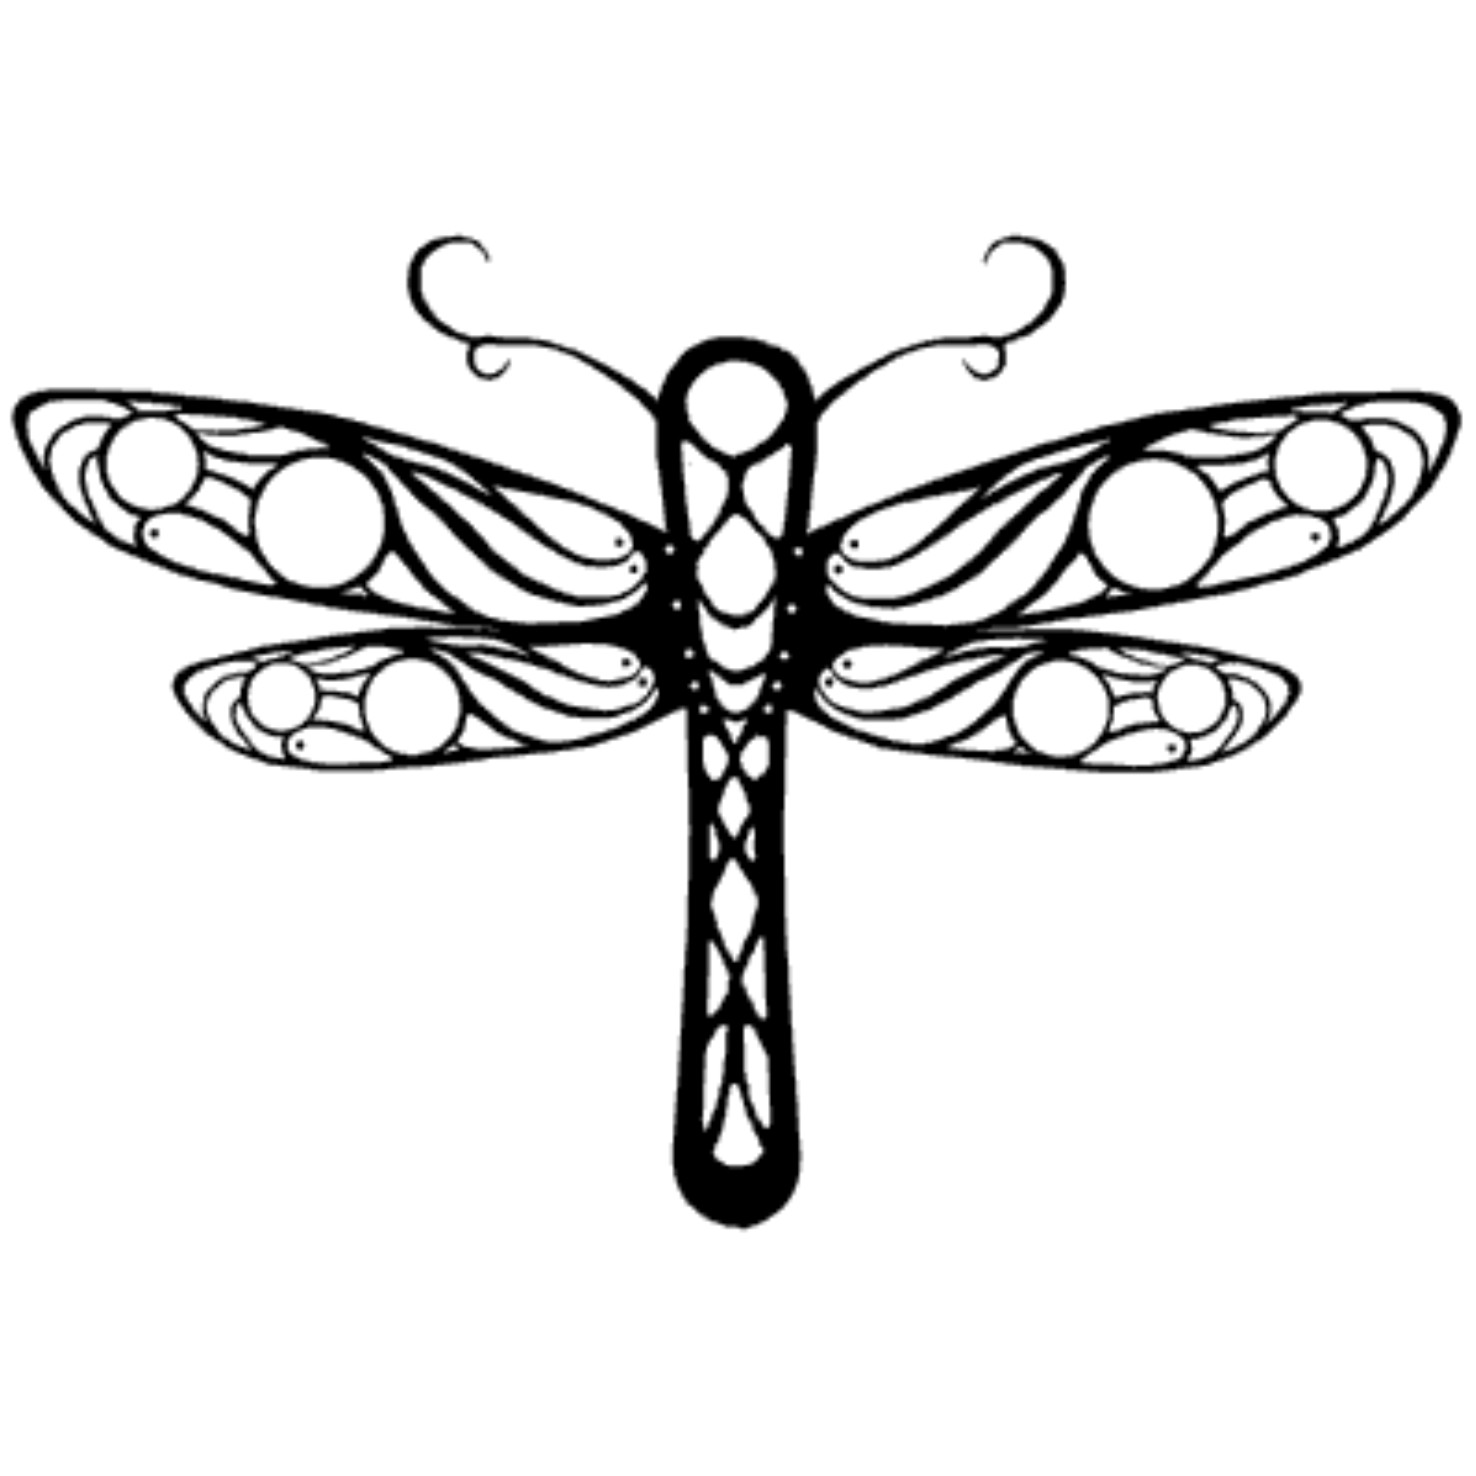 Dragonfly Tattoo Line Drawing : Dragonfly drawings clipart best